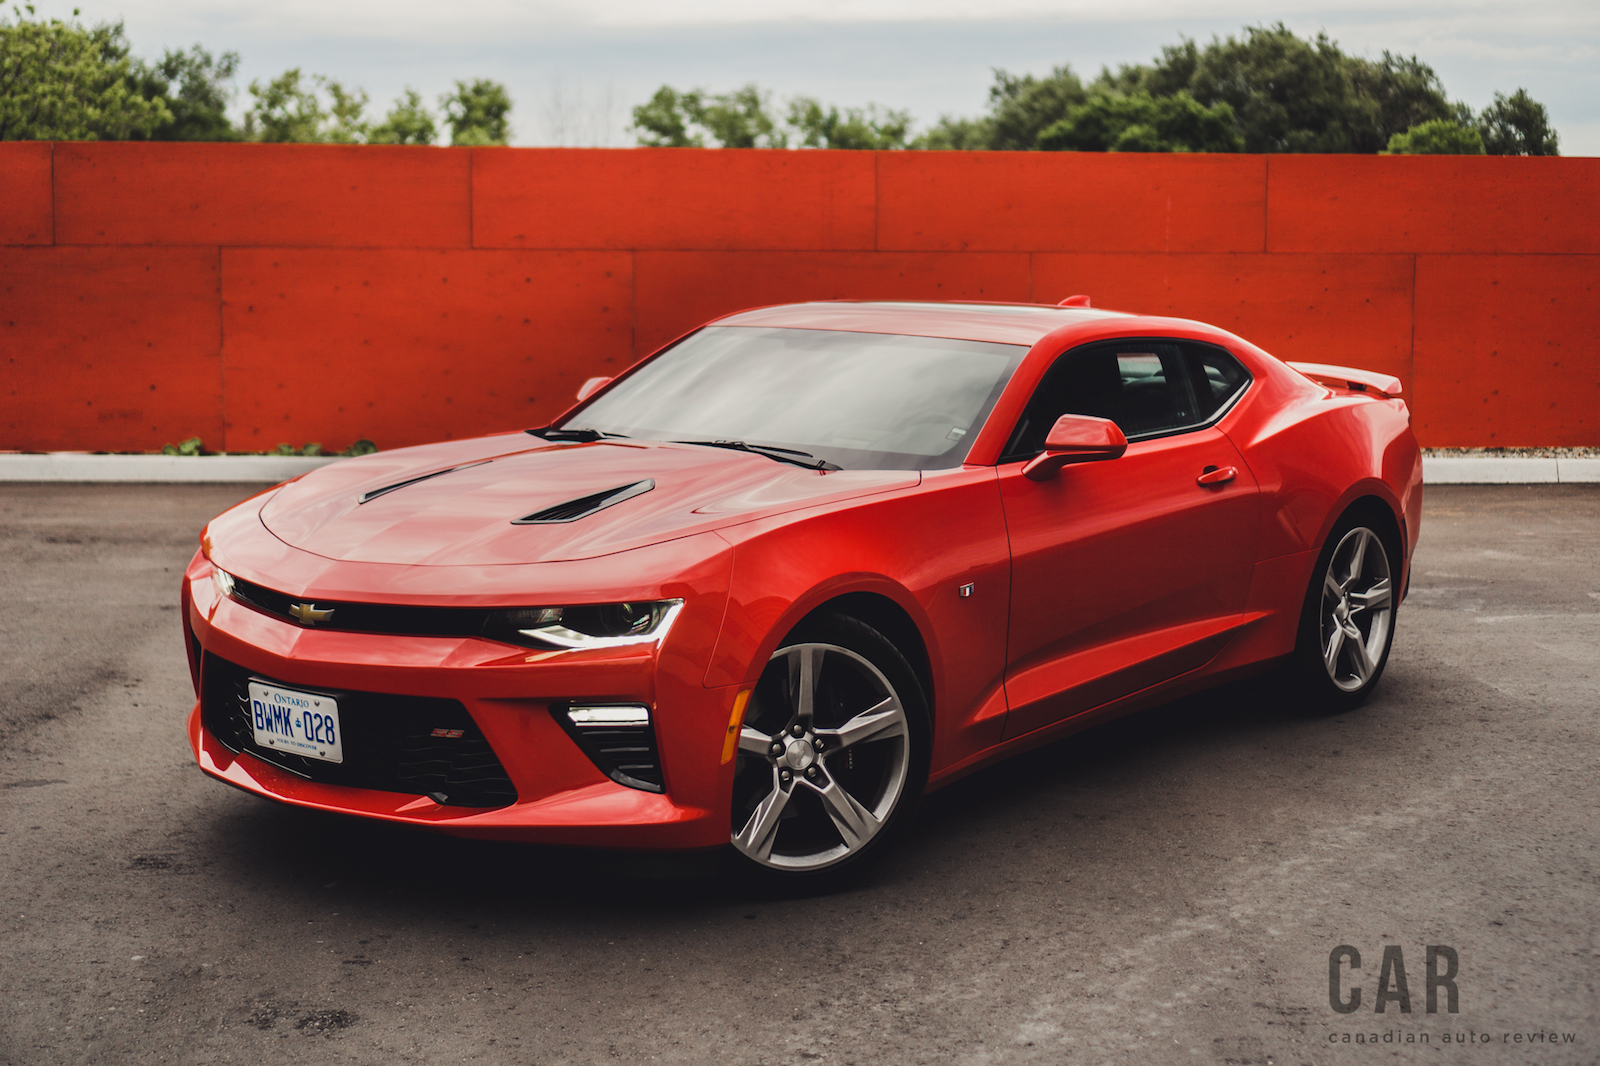 Beautiful Review 2016 Chevrolet Camaro SS  Canadian Auto Review